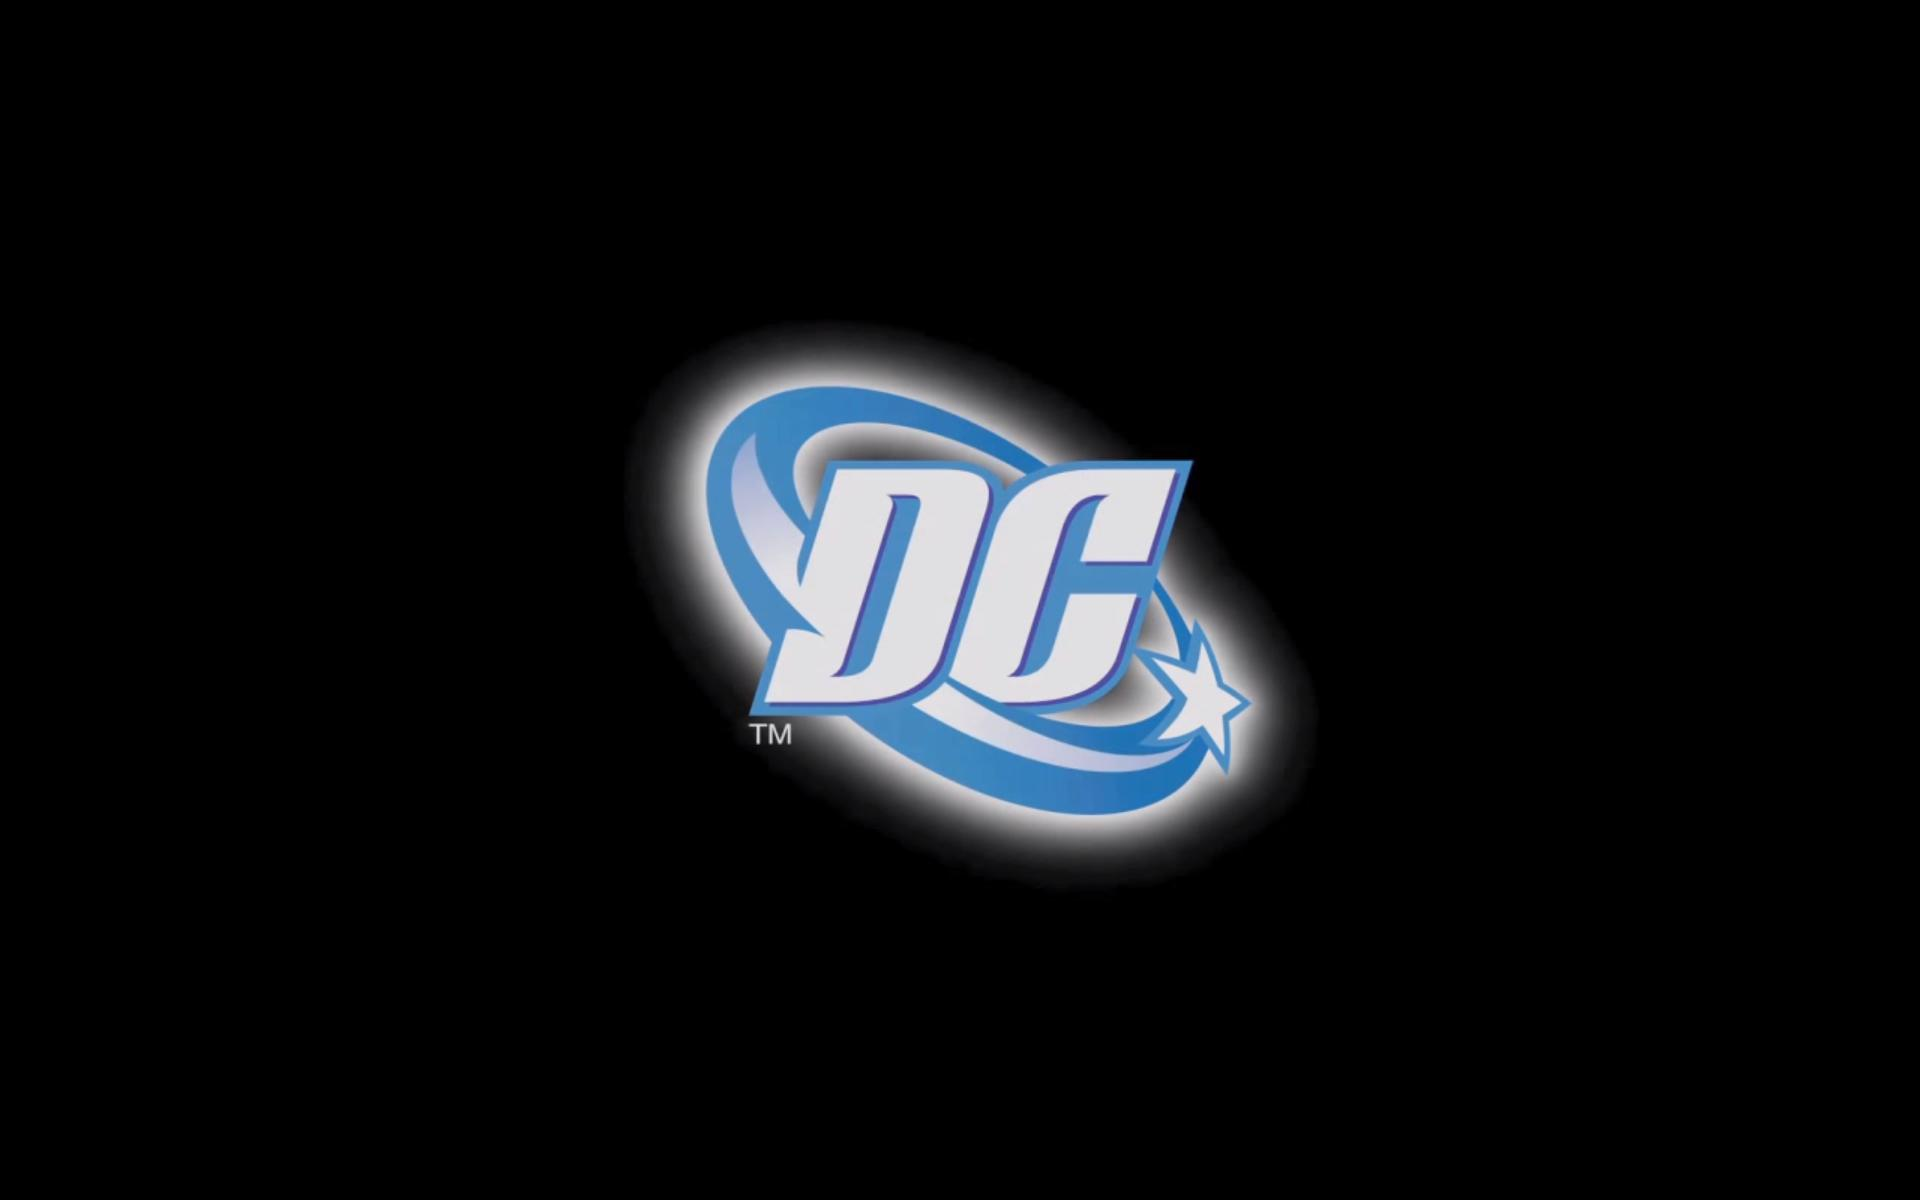 dcgame-2010-12-24-17-22-41-51